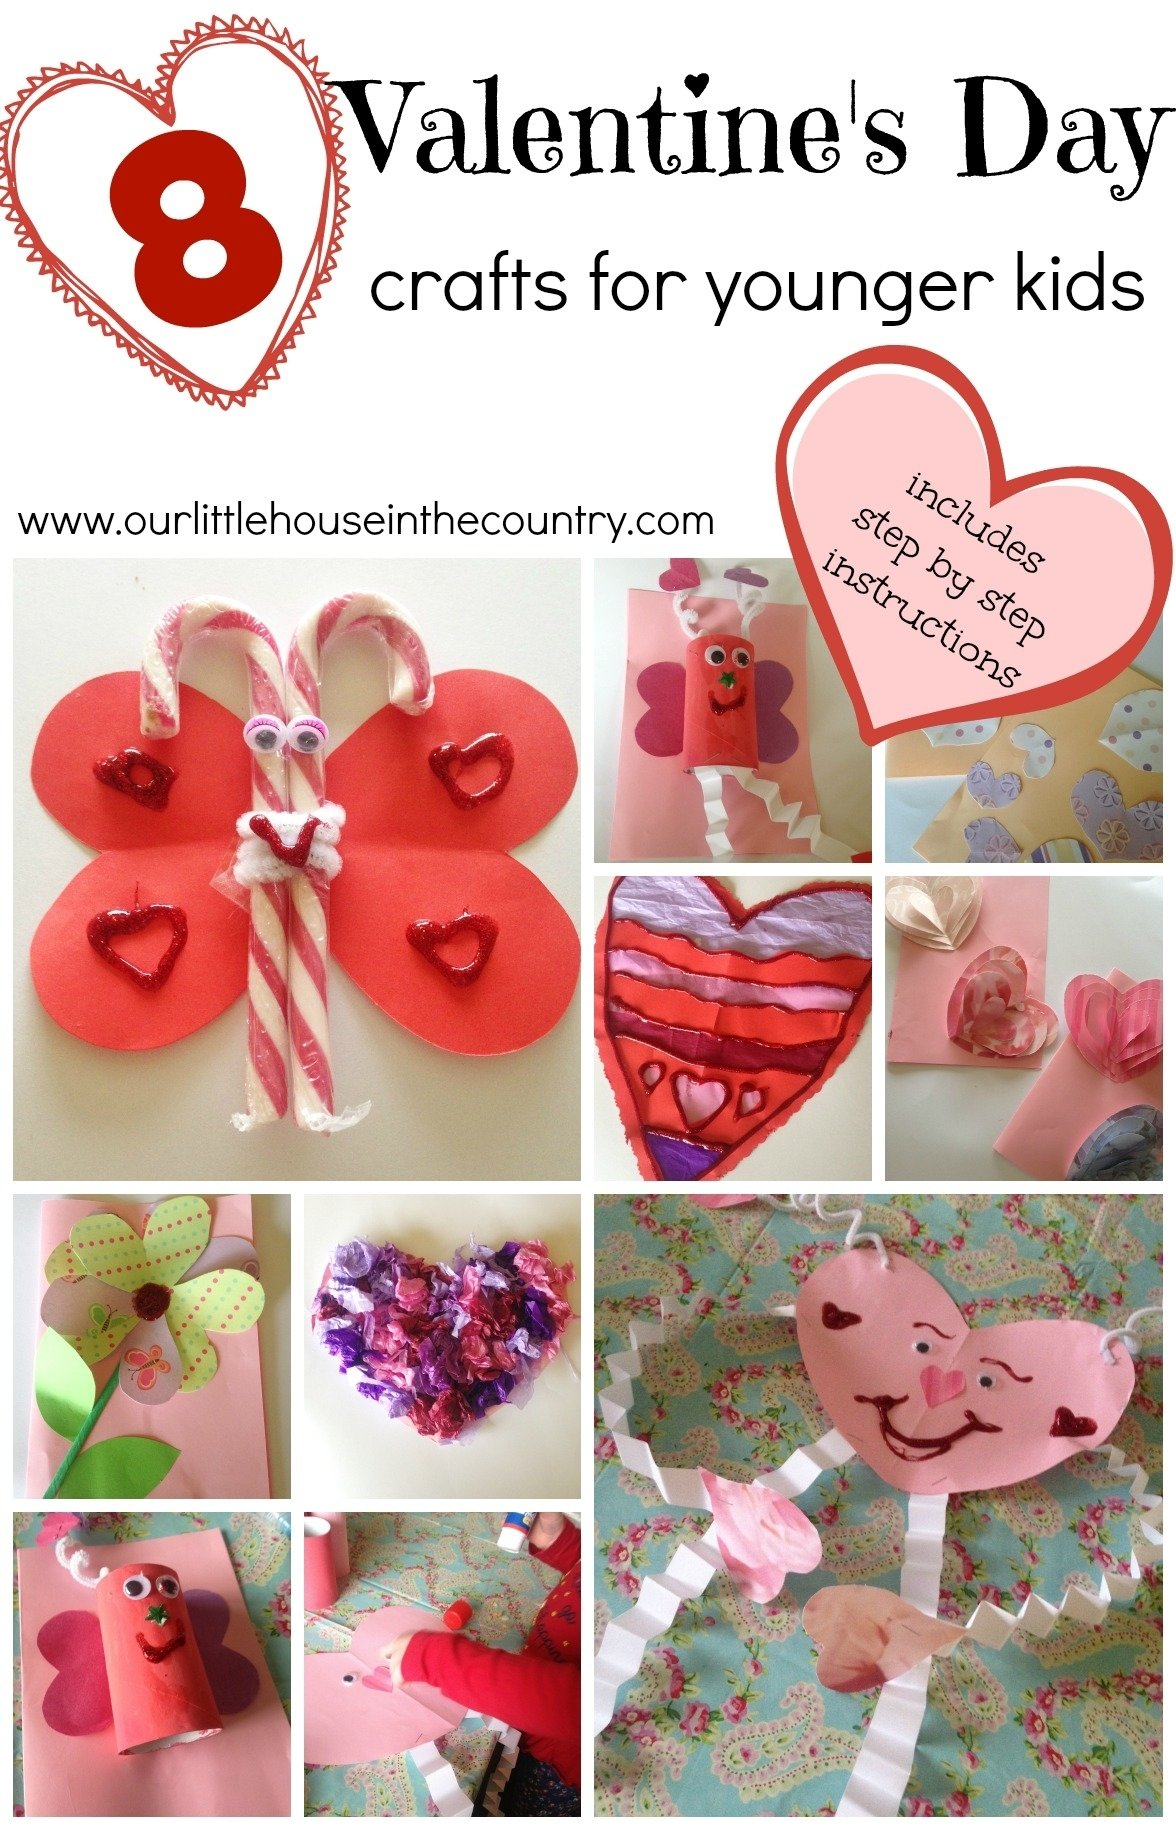 10 Famous Valentines Day Ideas For Kindergarten valentines day crafts for younger children preschool and early